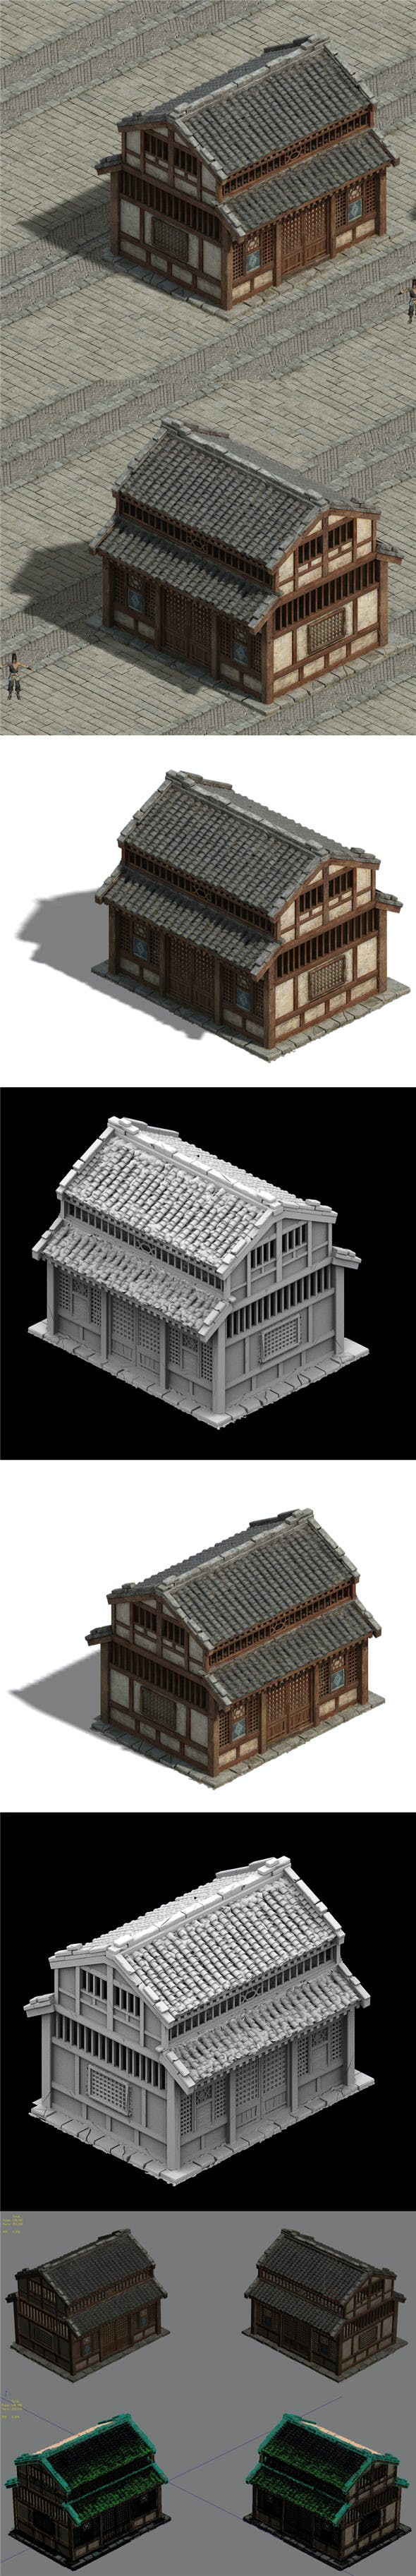 Wangcheng - ordinary houses 02 - 3DOcean Item for Sale